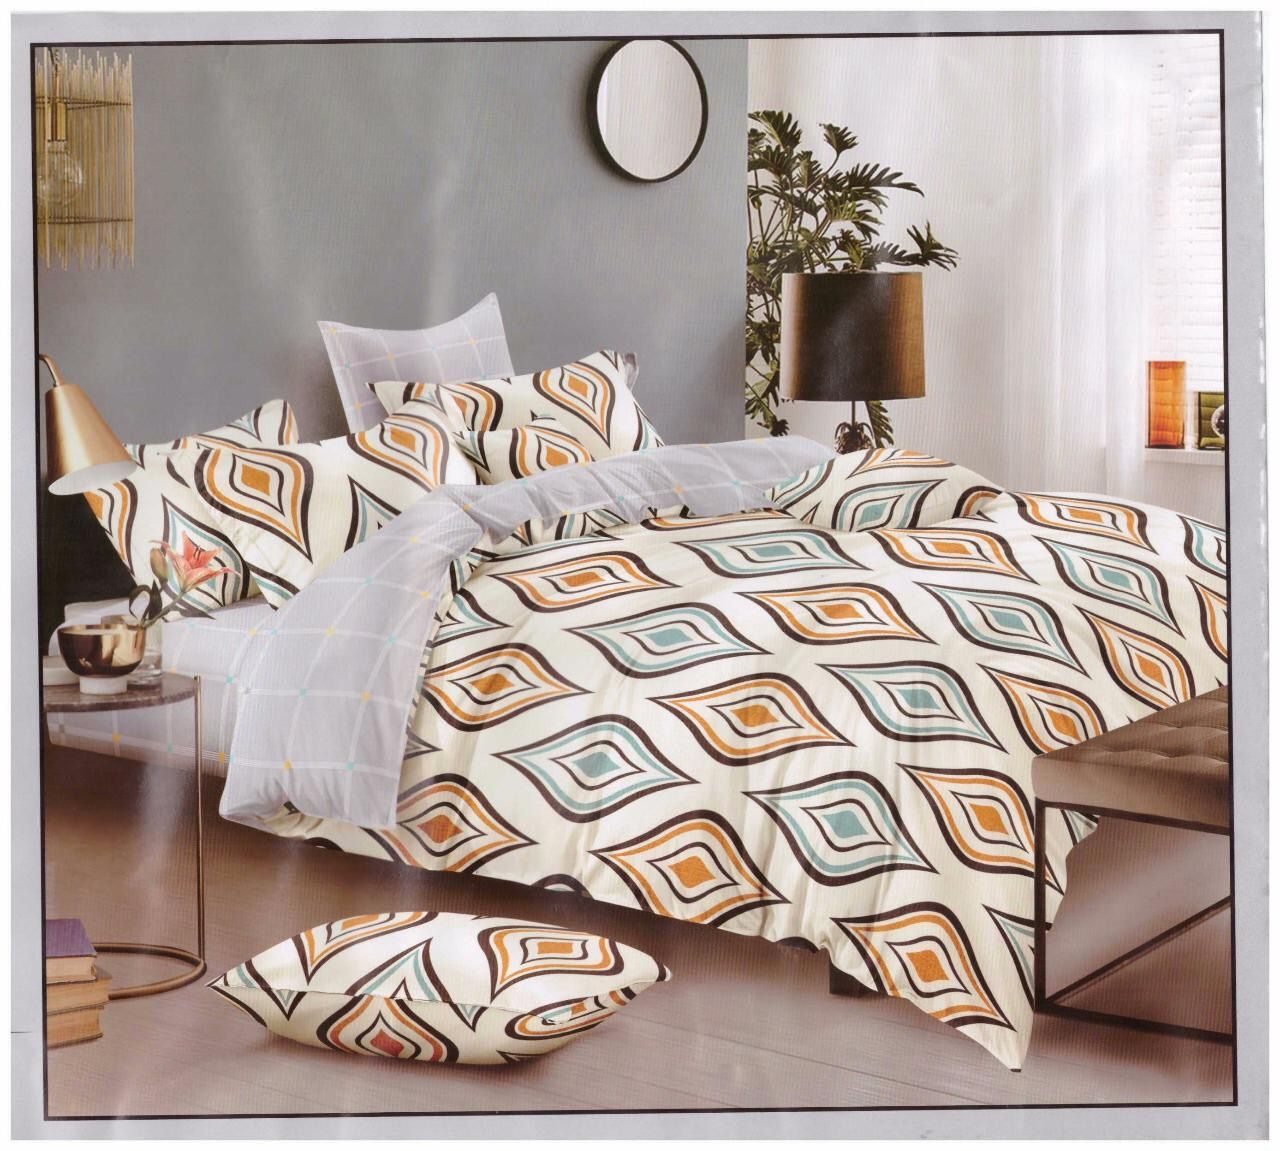 Duvets Wholesale Suppliers In 2020 Wholesale Bedding Bed Linen